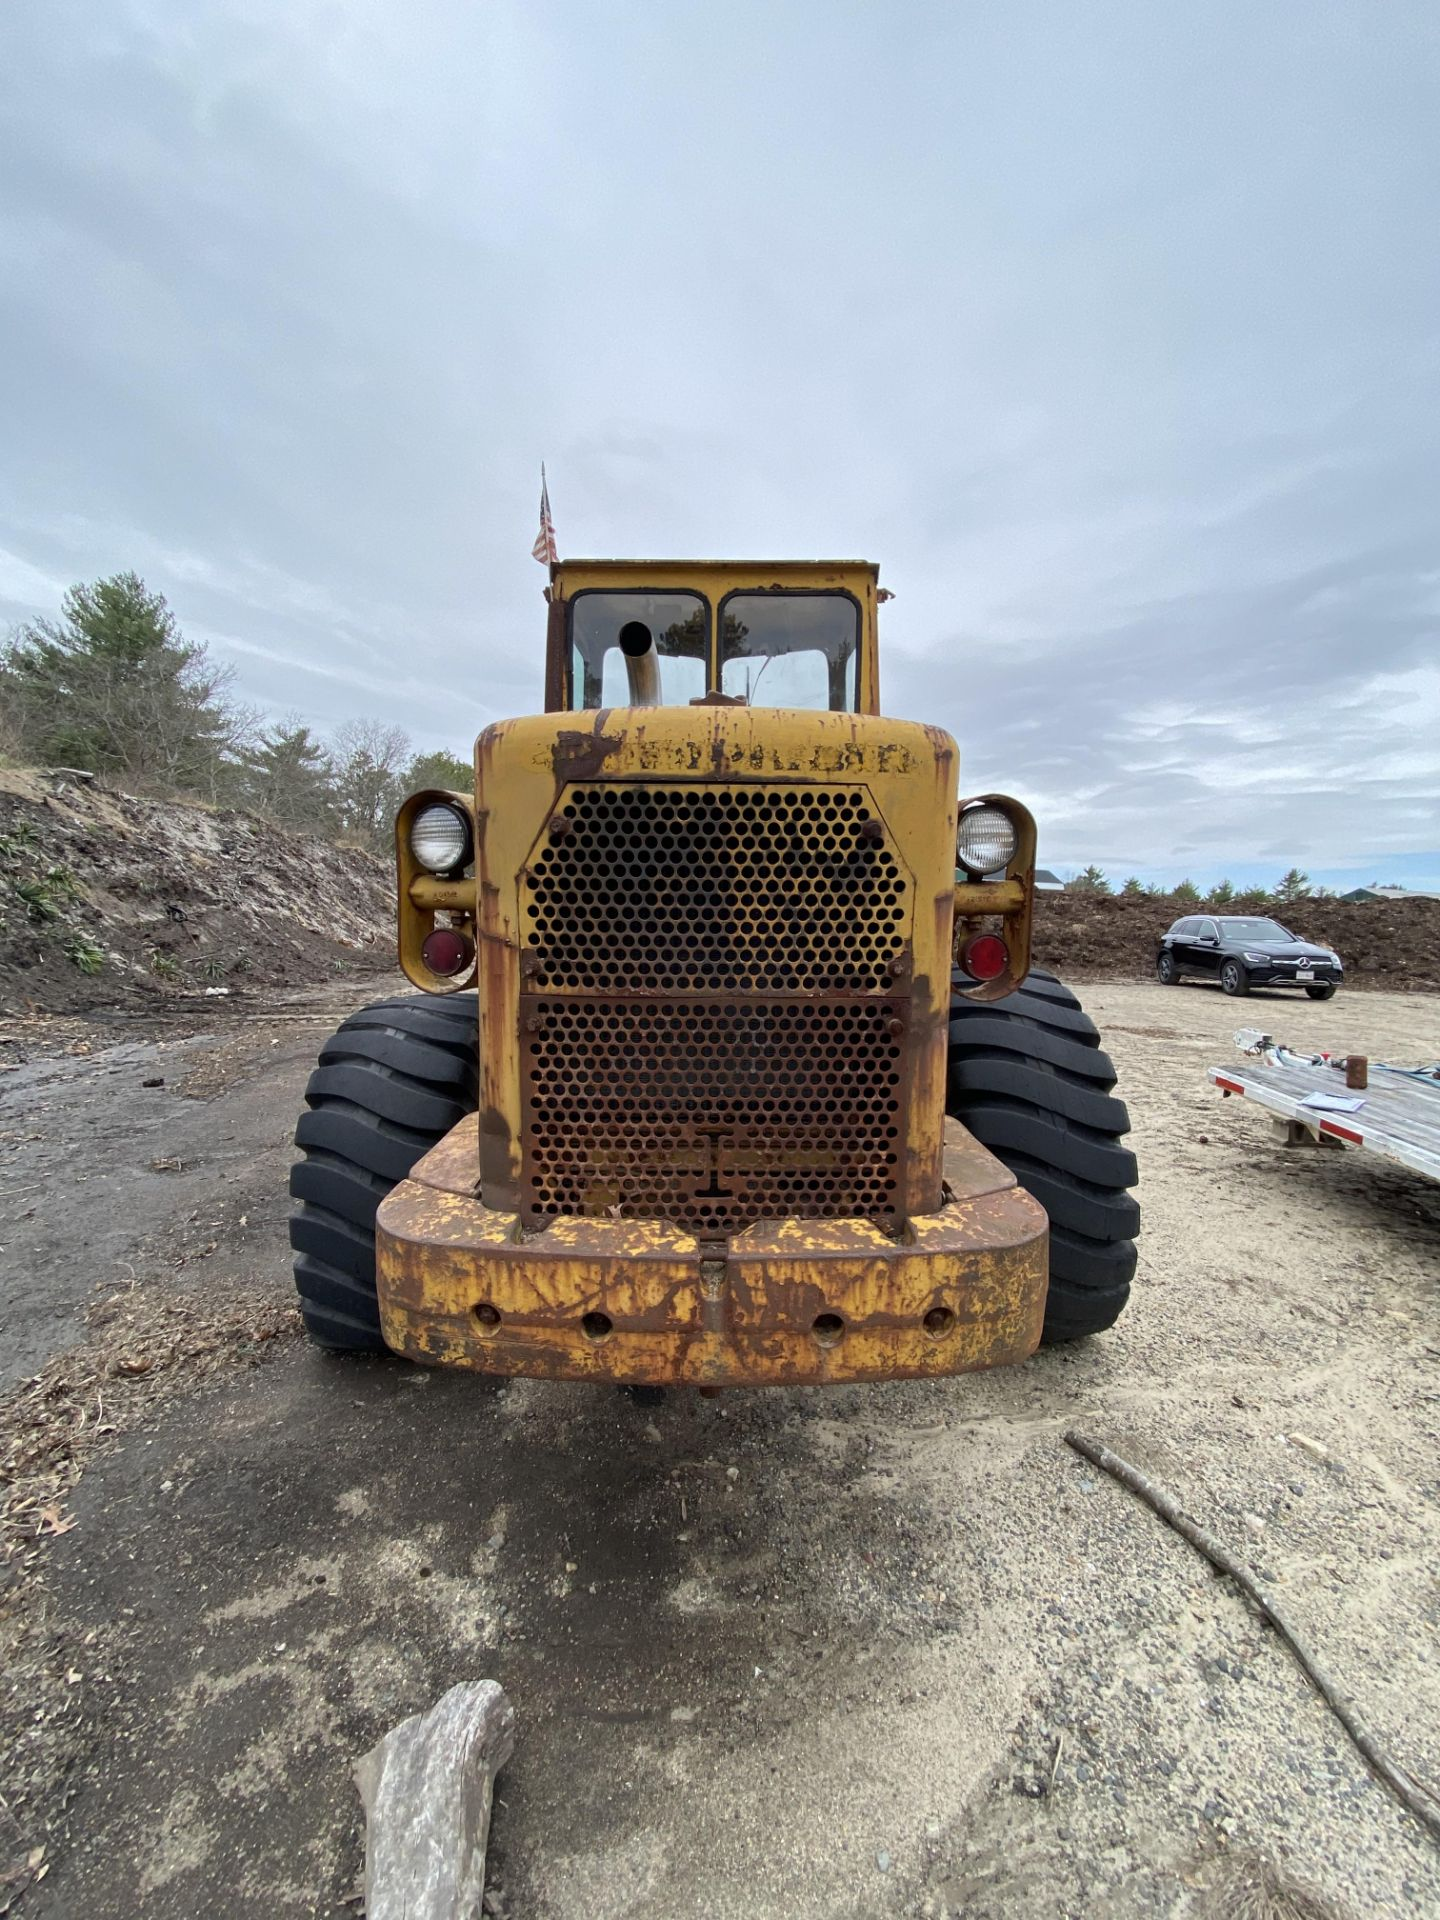 Caterpillar 966B Wheel Loader s/n 75A4794, No Title - Image 8 of 16